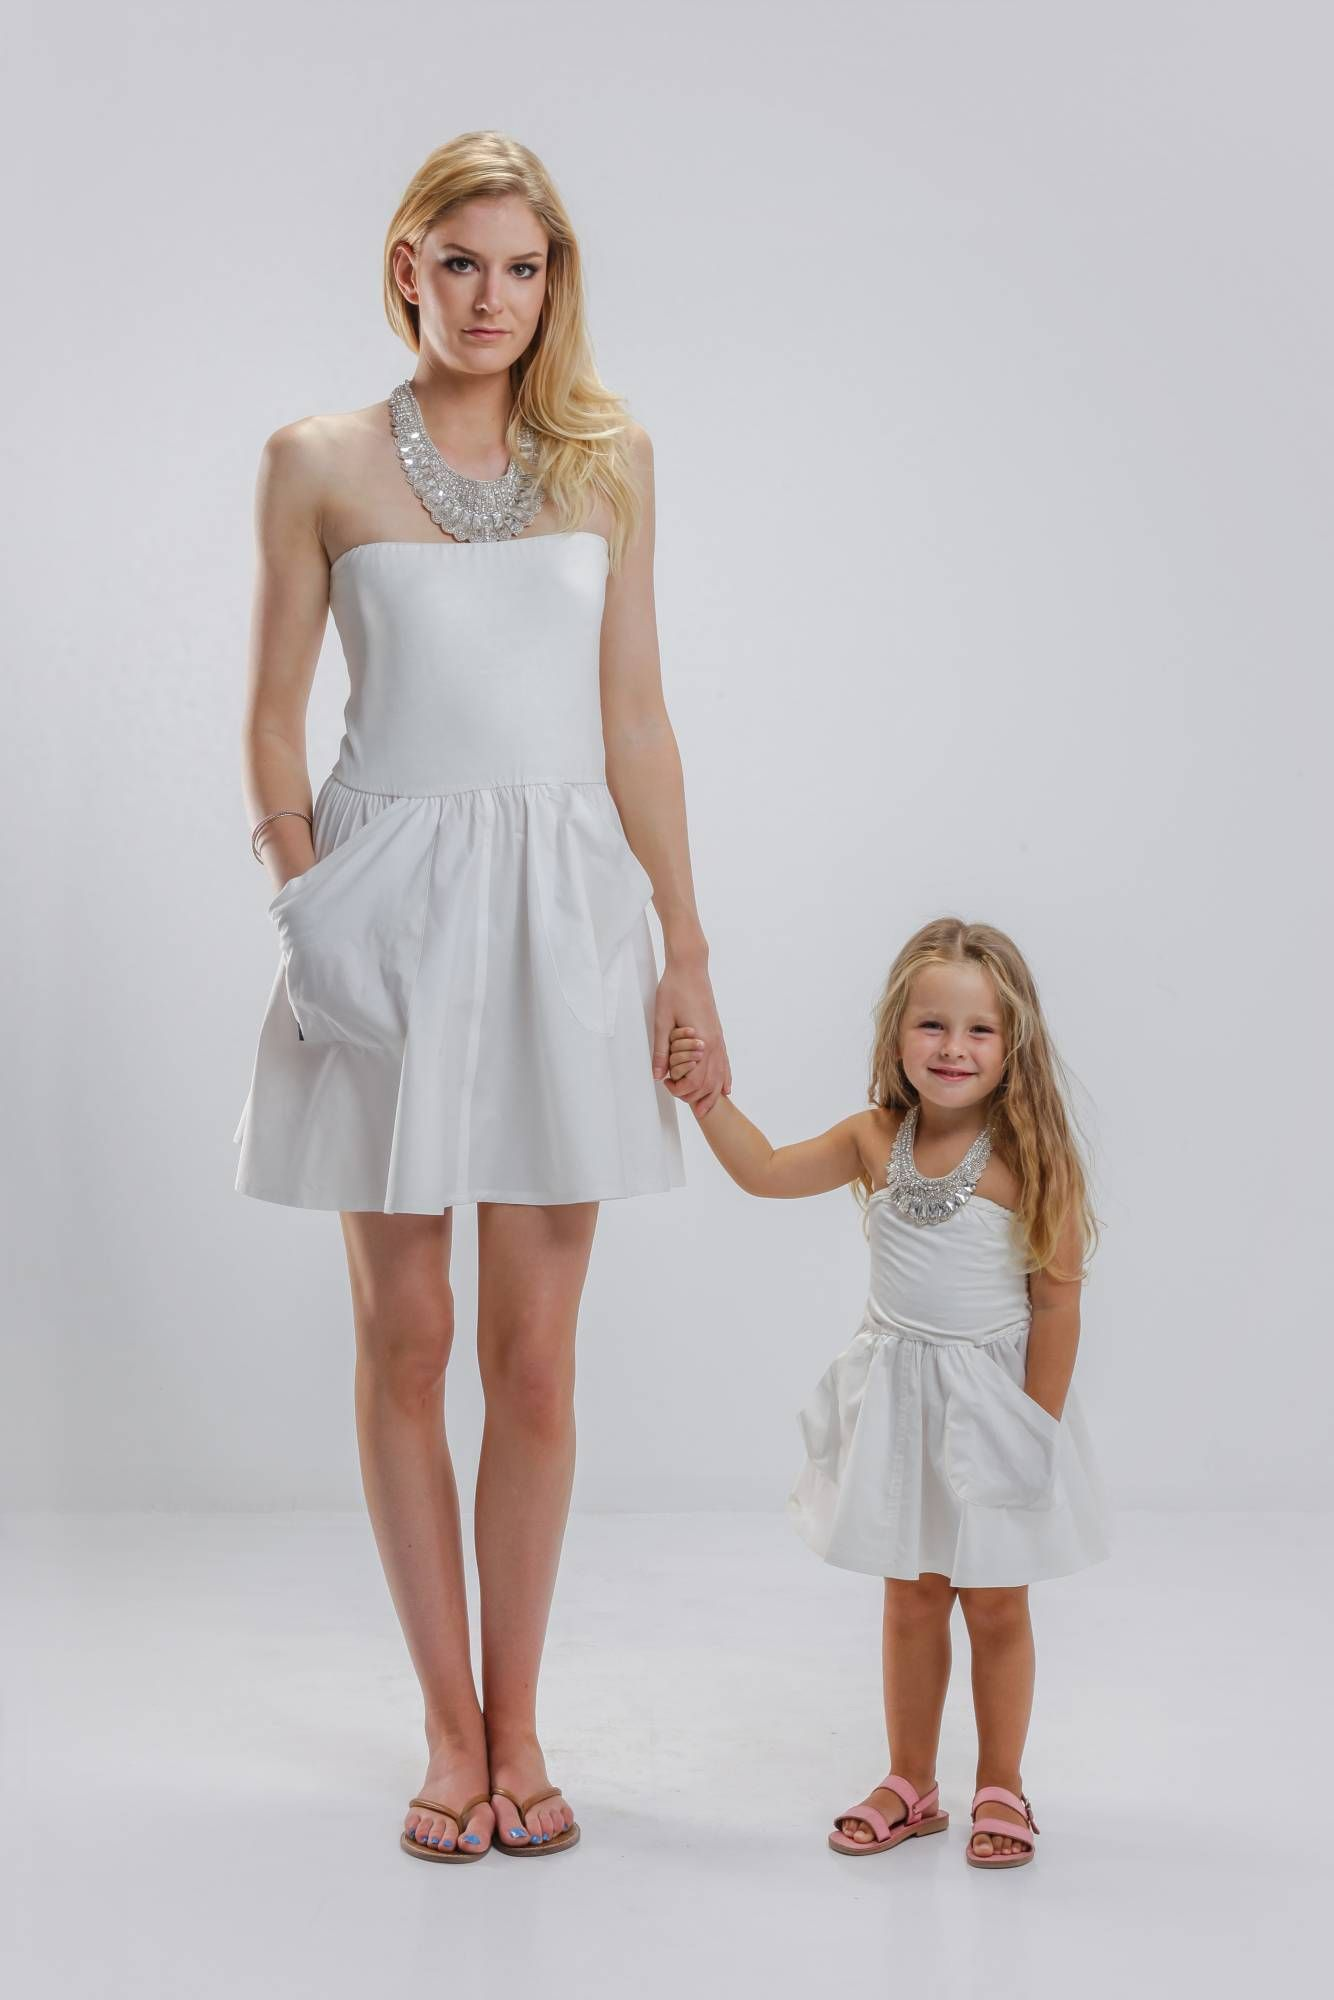 etsi everything simple clothing mother daughter outfits